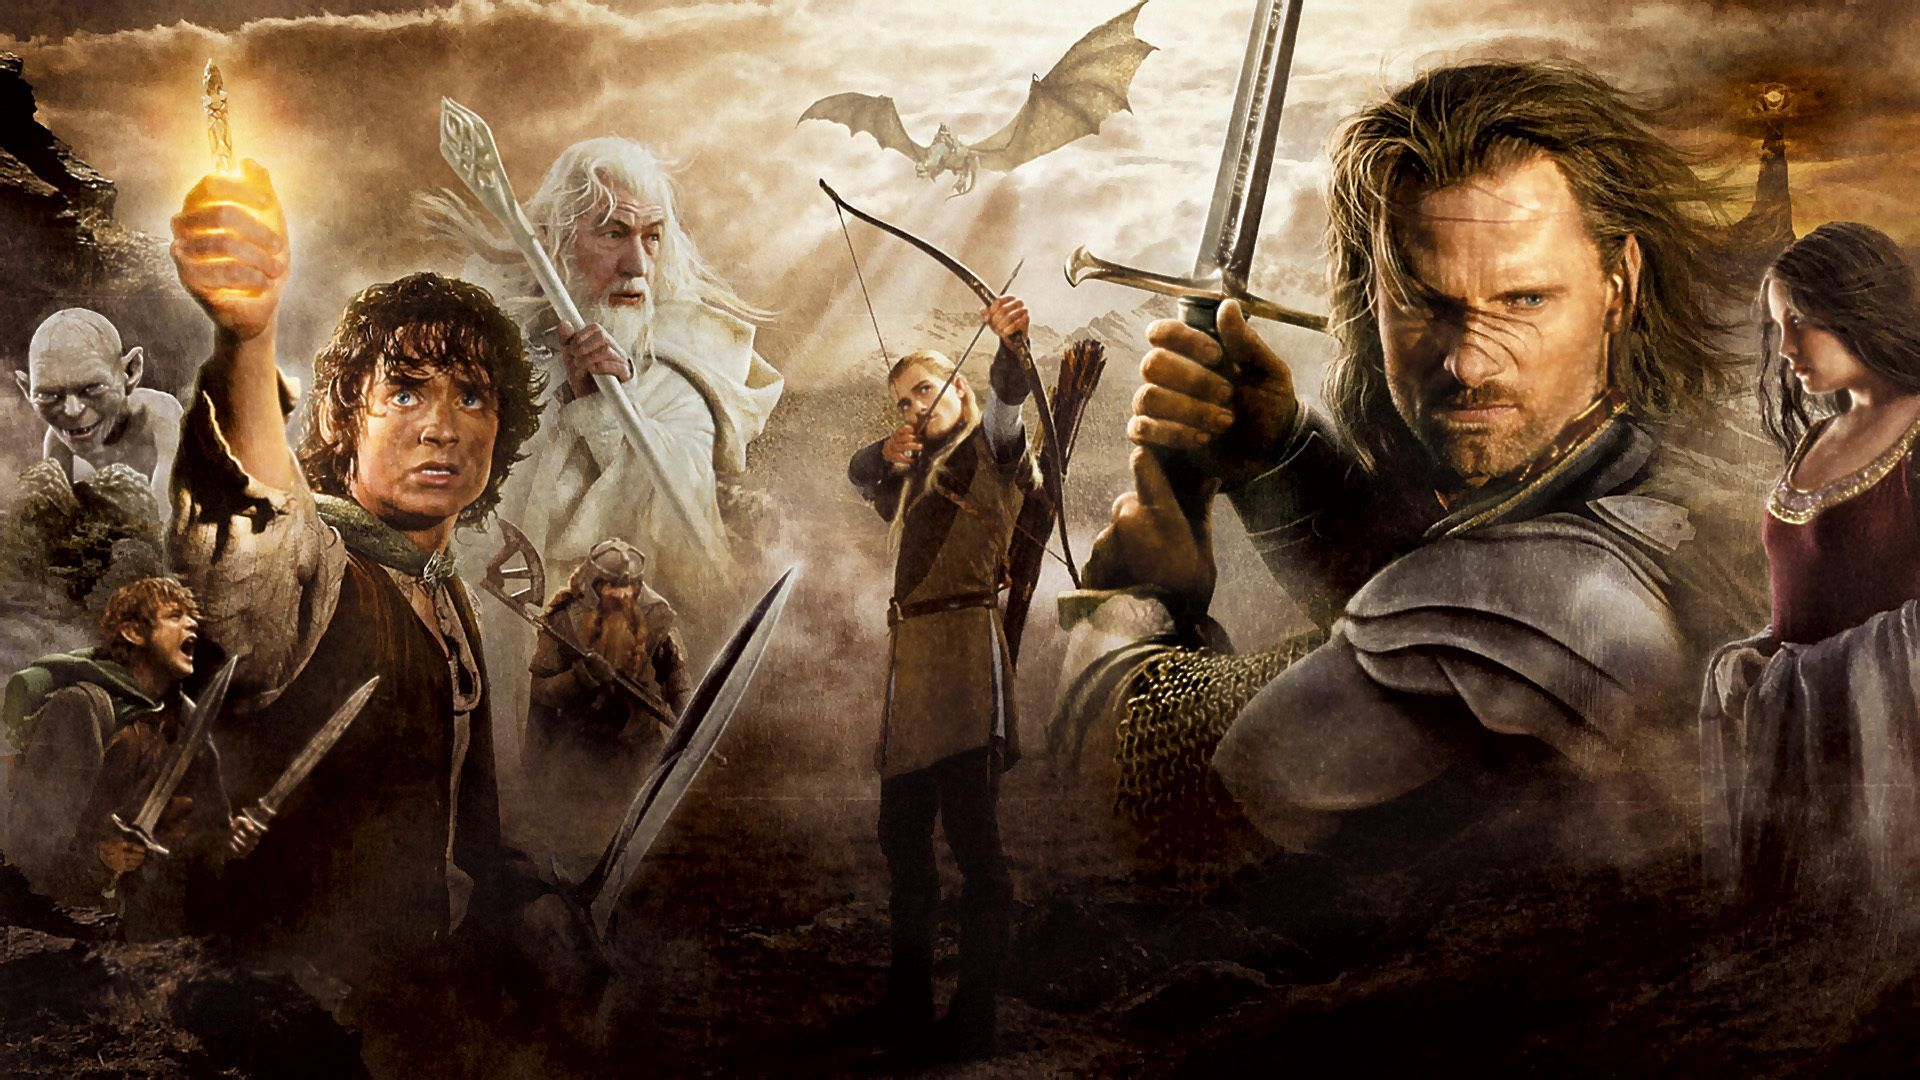 Lord of the Rings wallpaper 17275 1920x1080